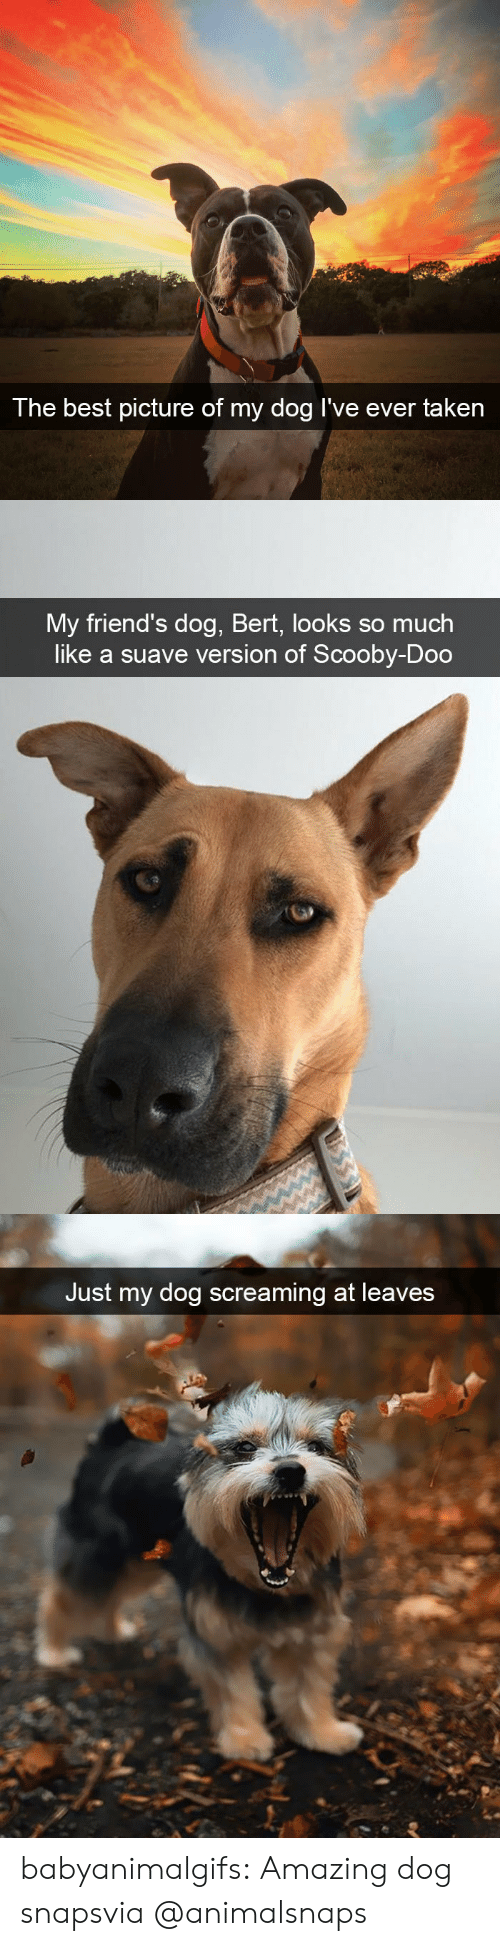 leaves: The best  picture of my dog I've ever taken   My friend's dog, Bert, looks so much  like a suave version of Scooby-Doo   Just my dog screaming at leaves babyanimalgifs:  Amazing dog snapsvia @animalsnaps​